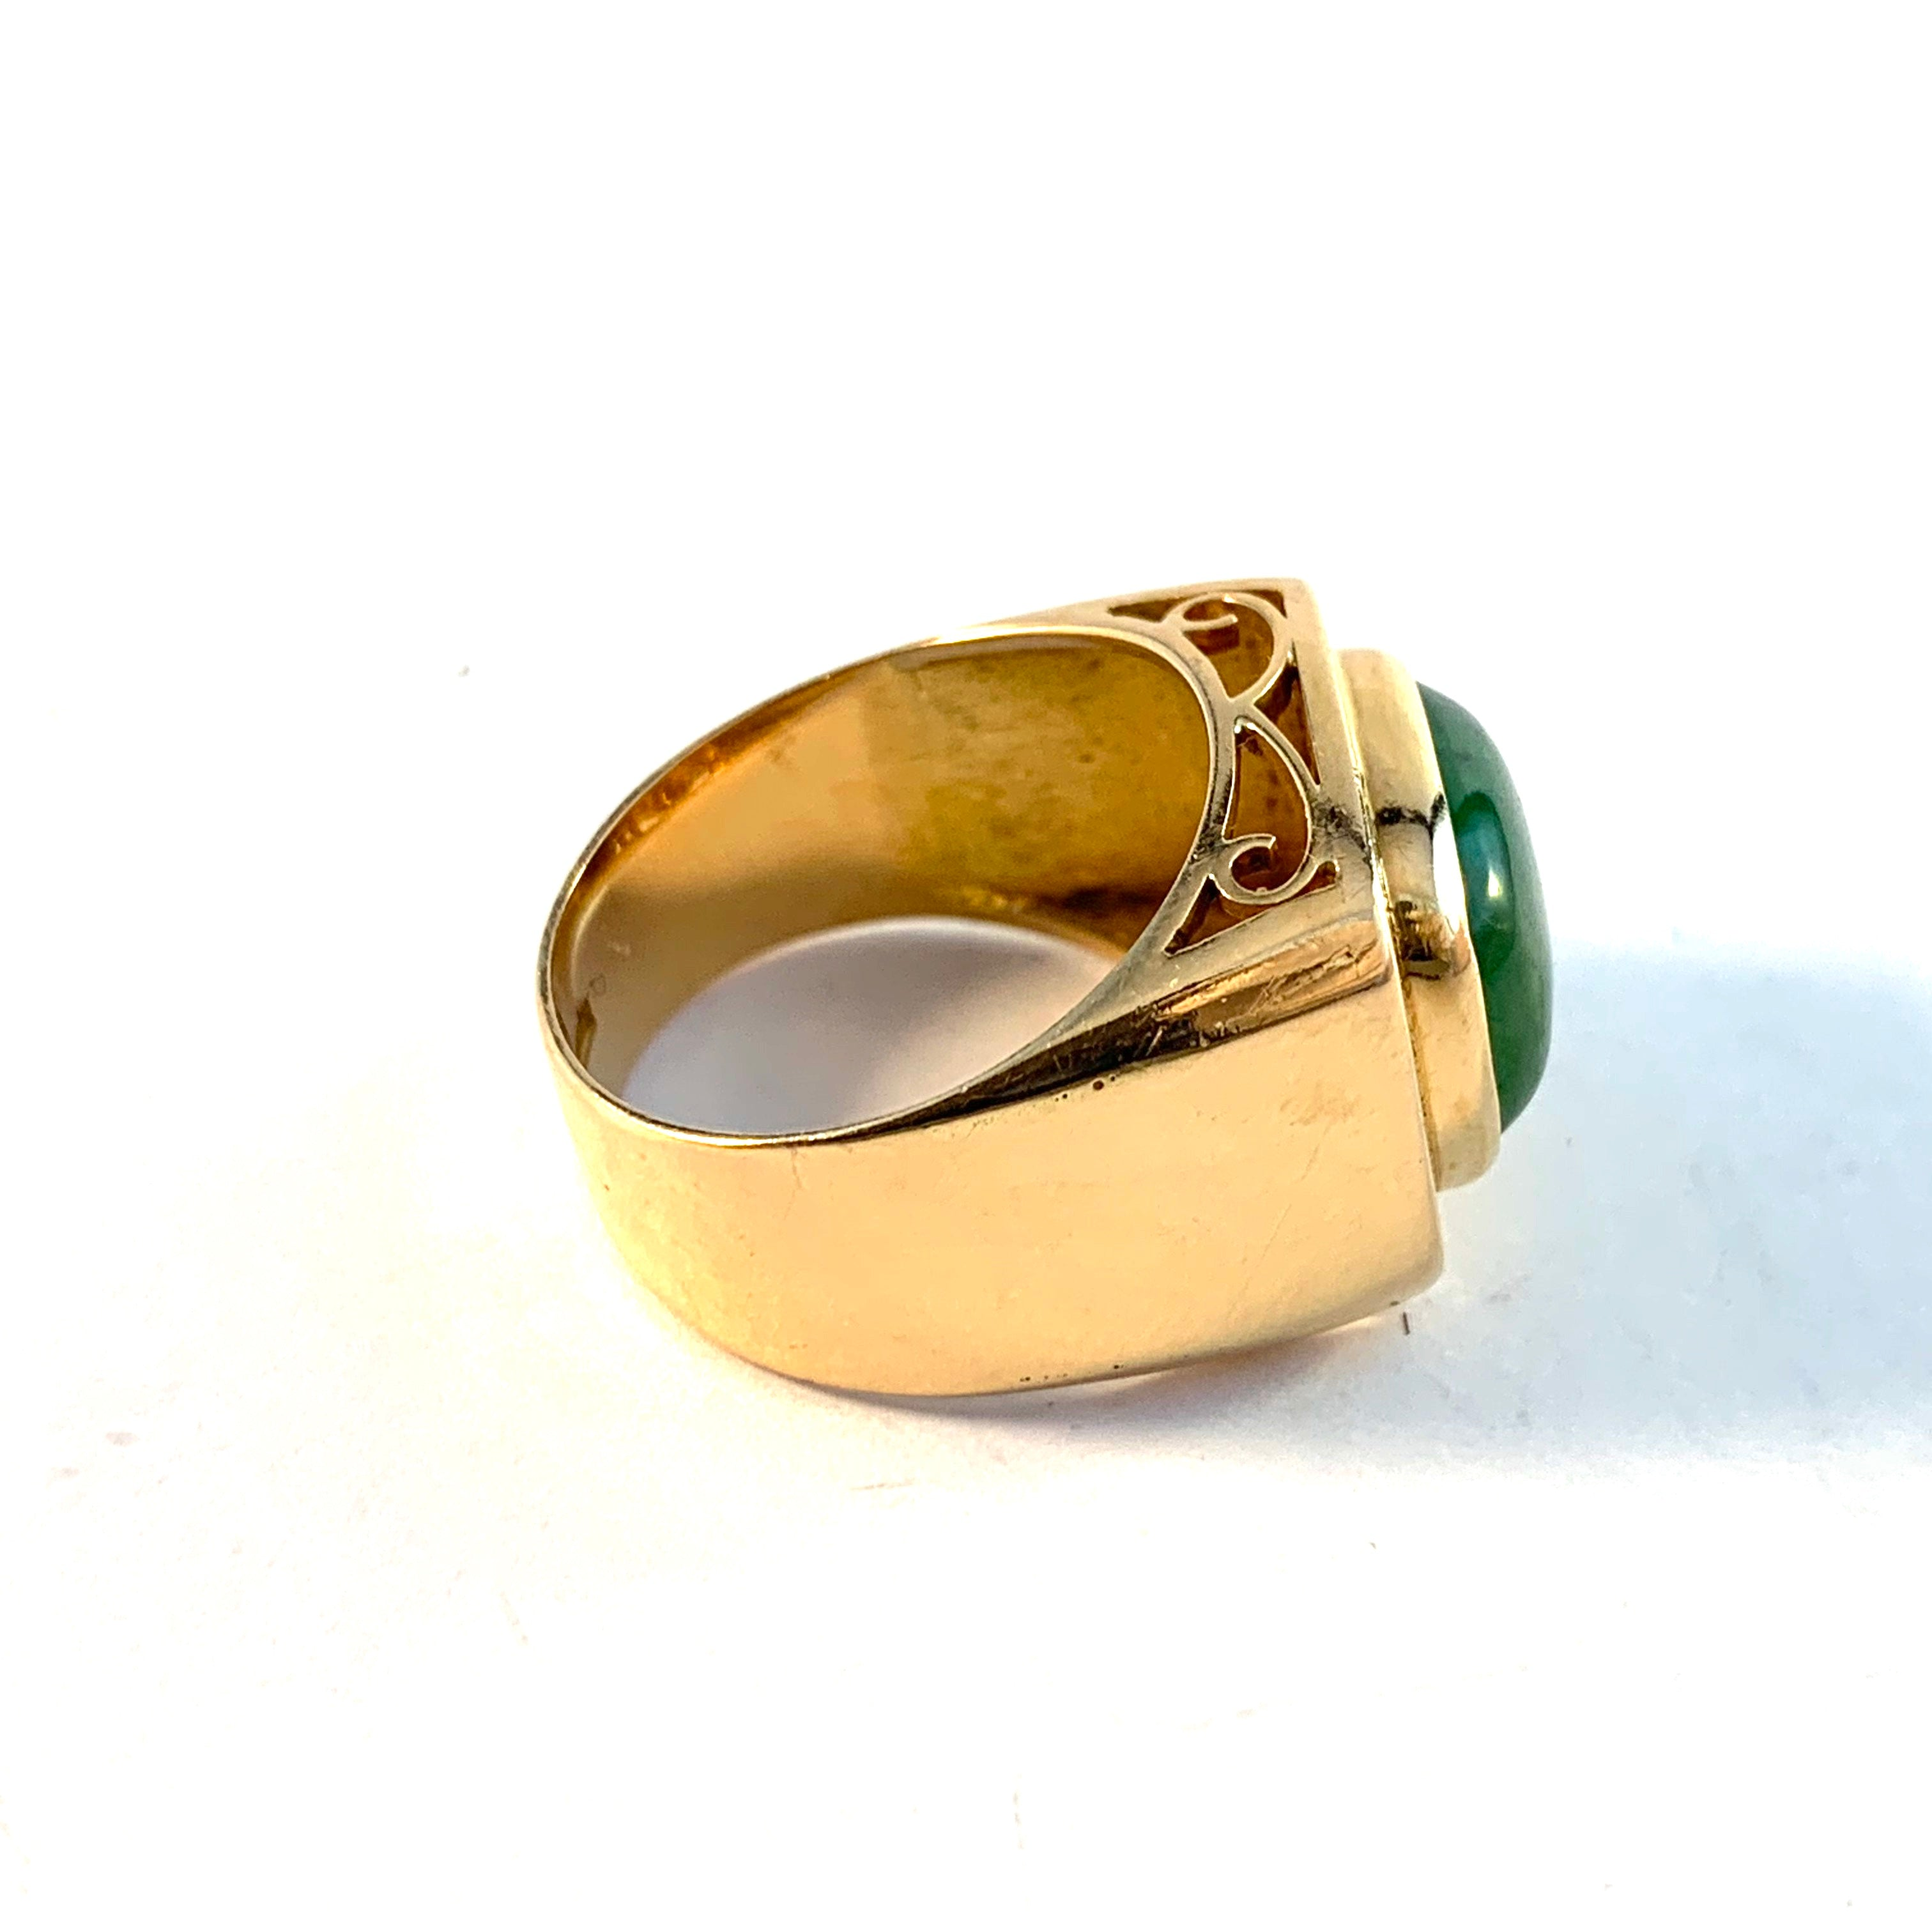 Nyström, Sweden 1974. 18k Gold Jade Ring.